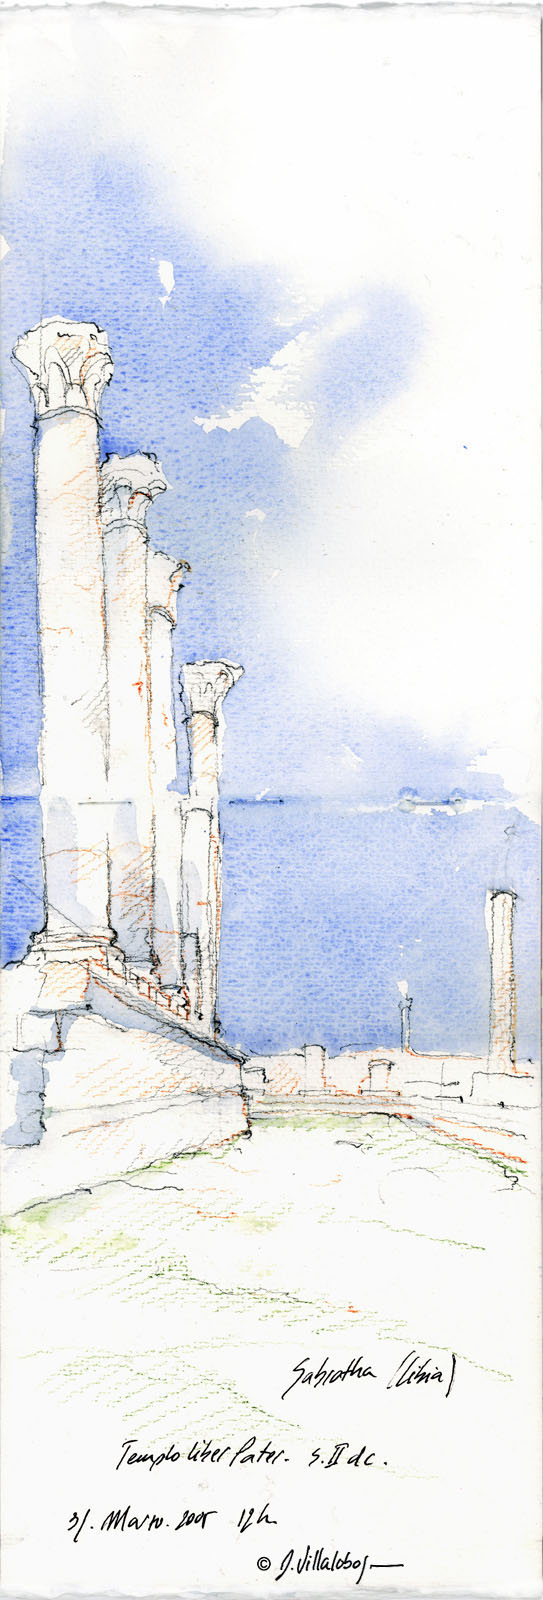 danielvillalobos-architecture-sketchbook-sketch-libya-9